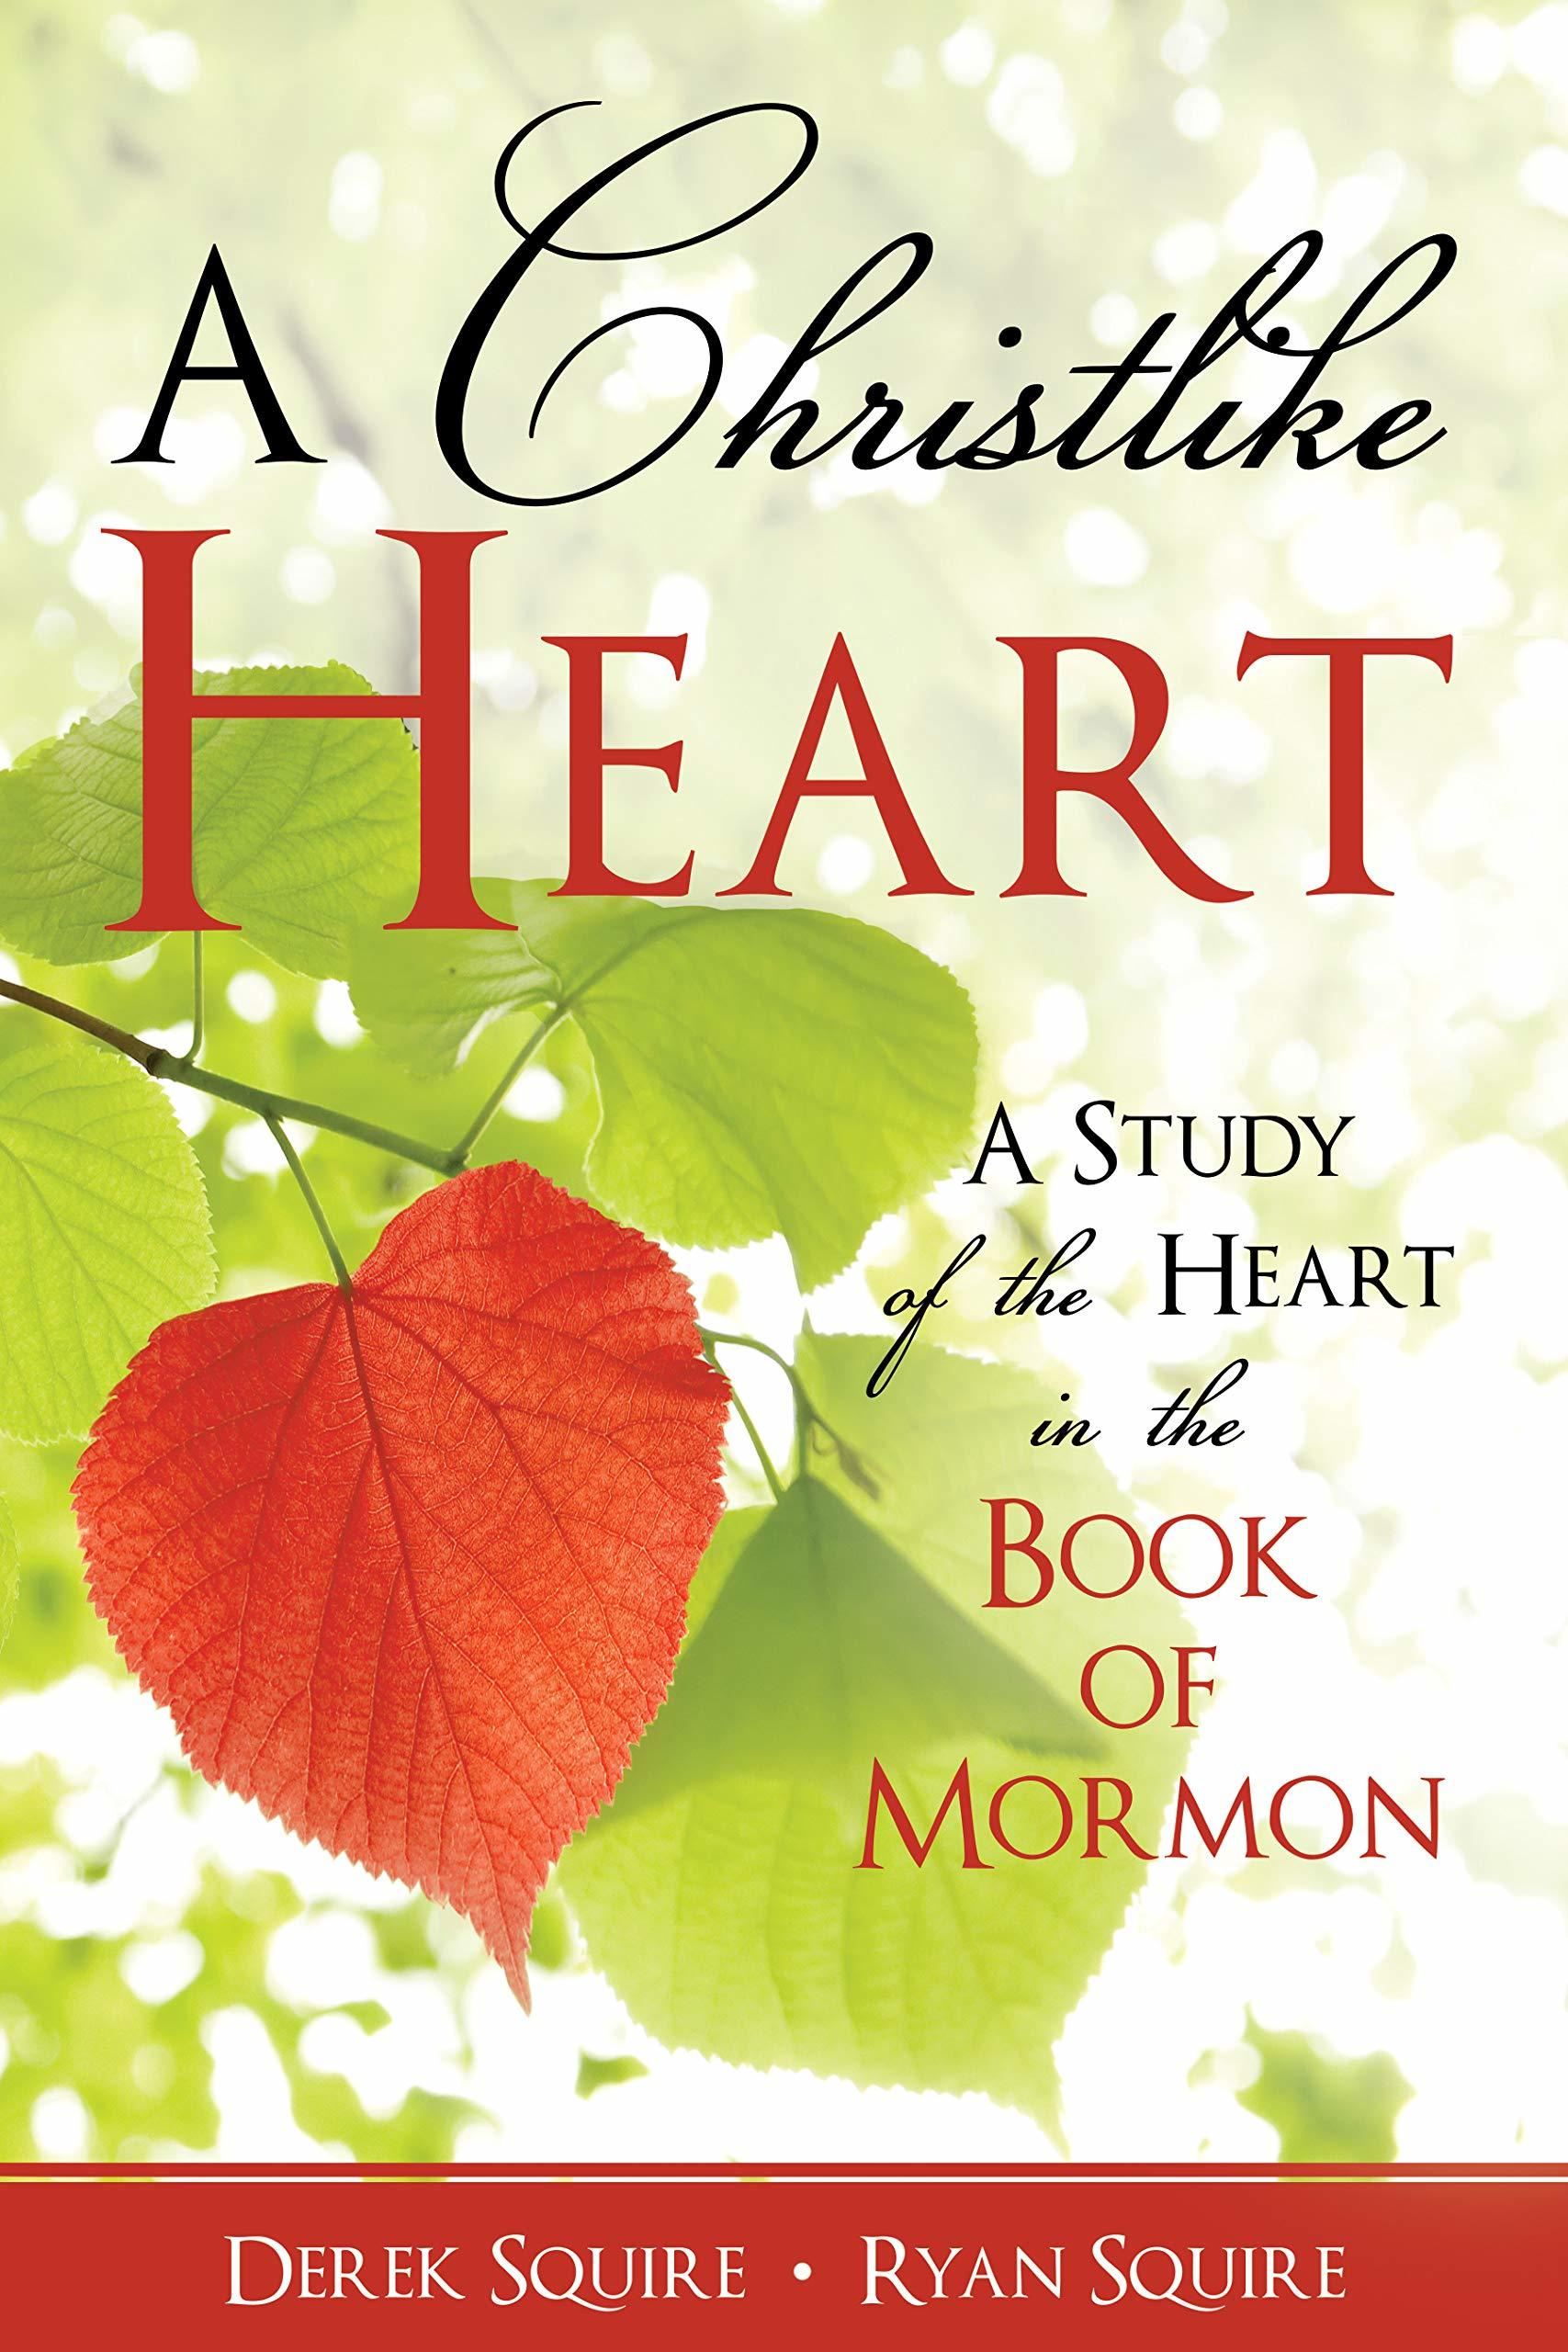 """""""A Christlike Heart: A Study of the Heart in the Book of Mormon"""" is written by Derek Squire and Ryan Squire"""